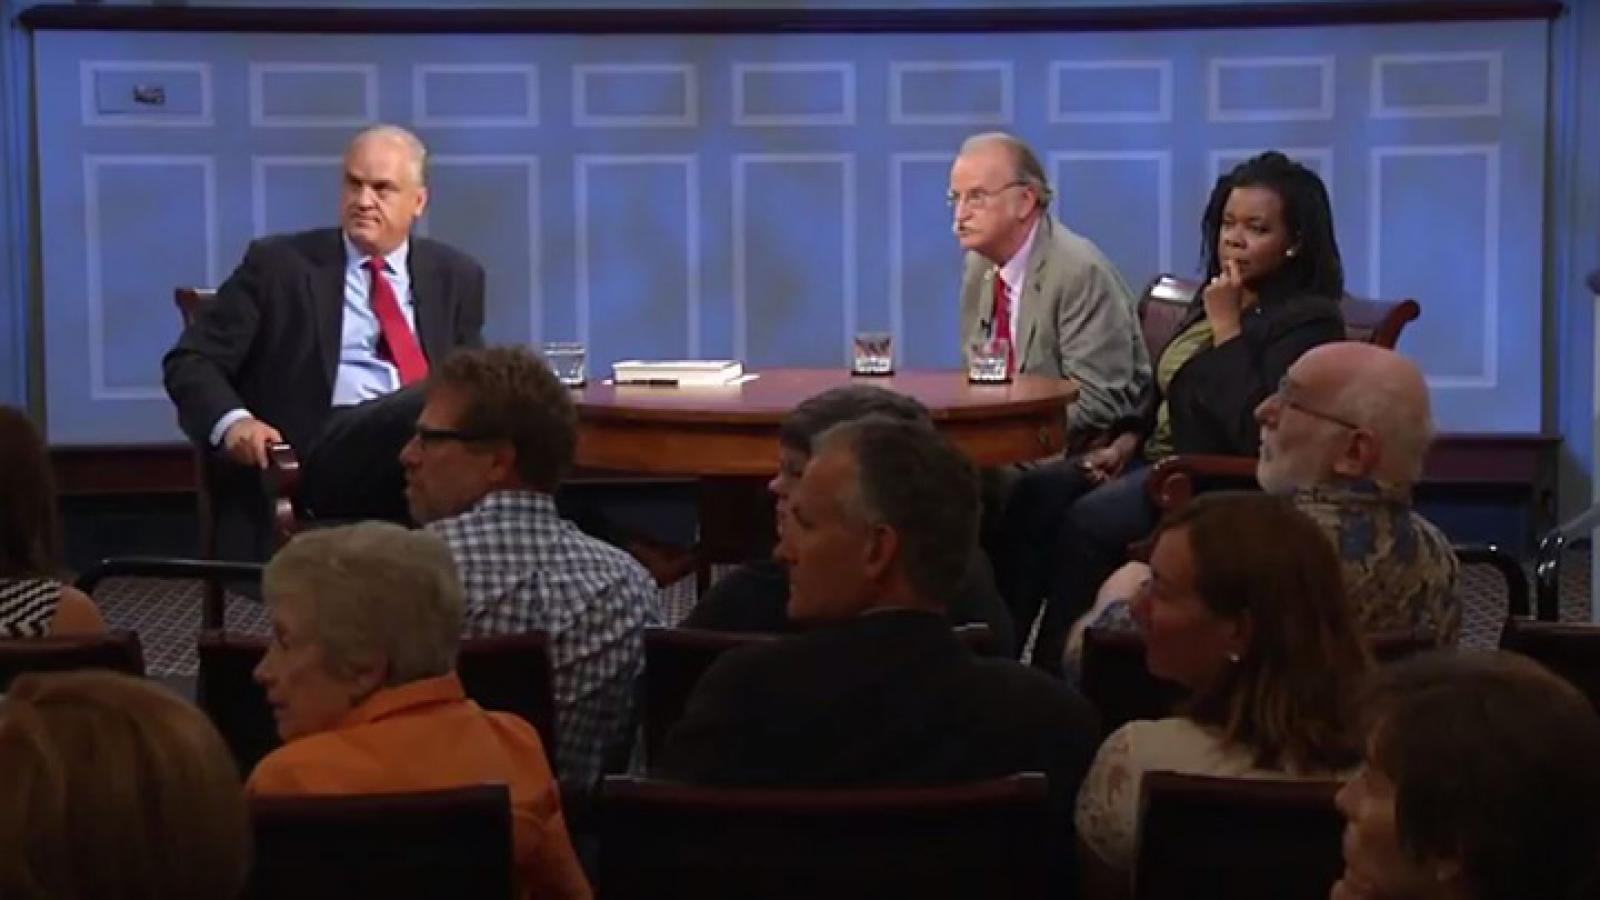 Peter Onuf and Annette Gordon-Reed take questions from the American Forum studio audience